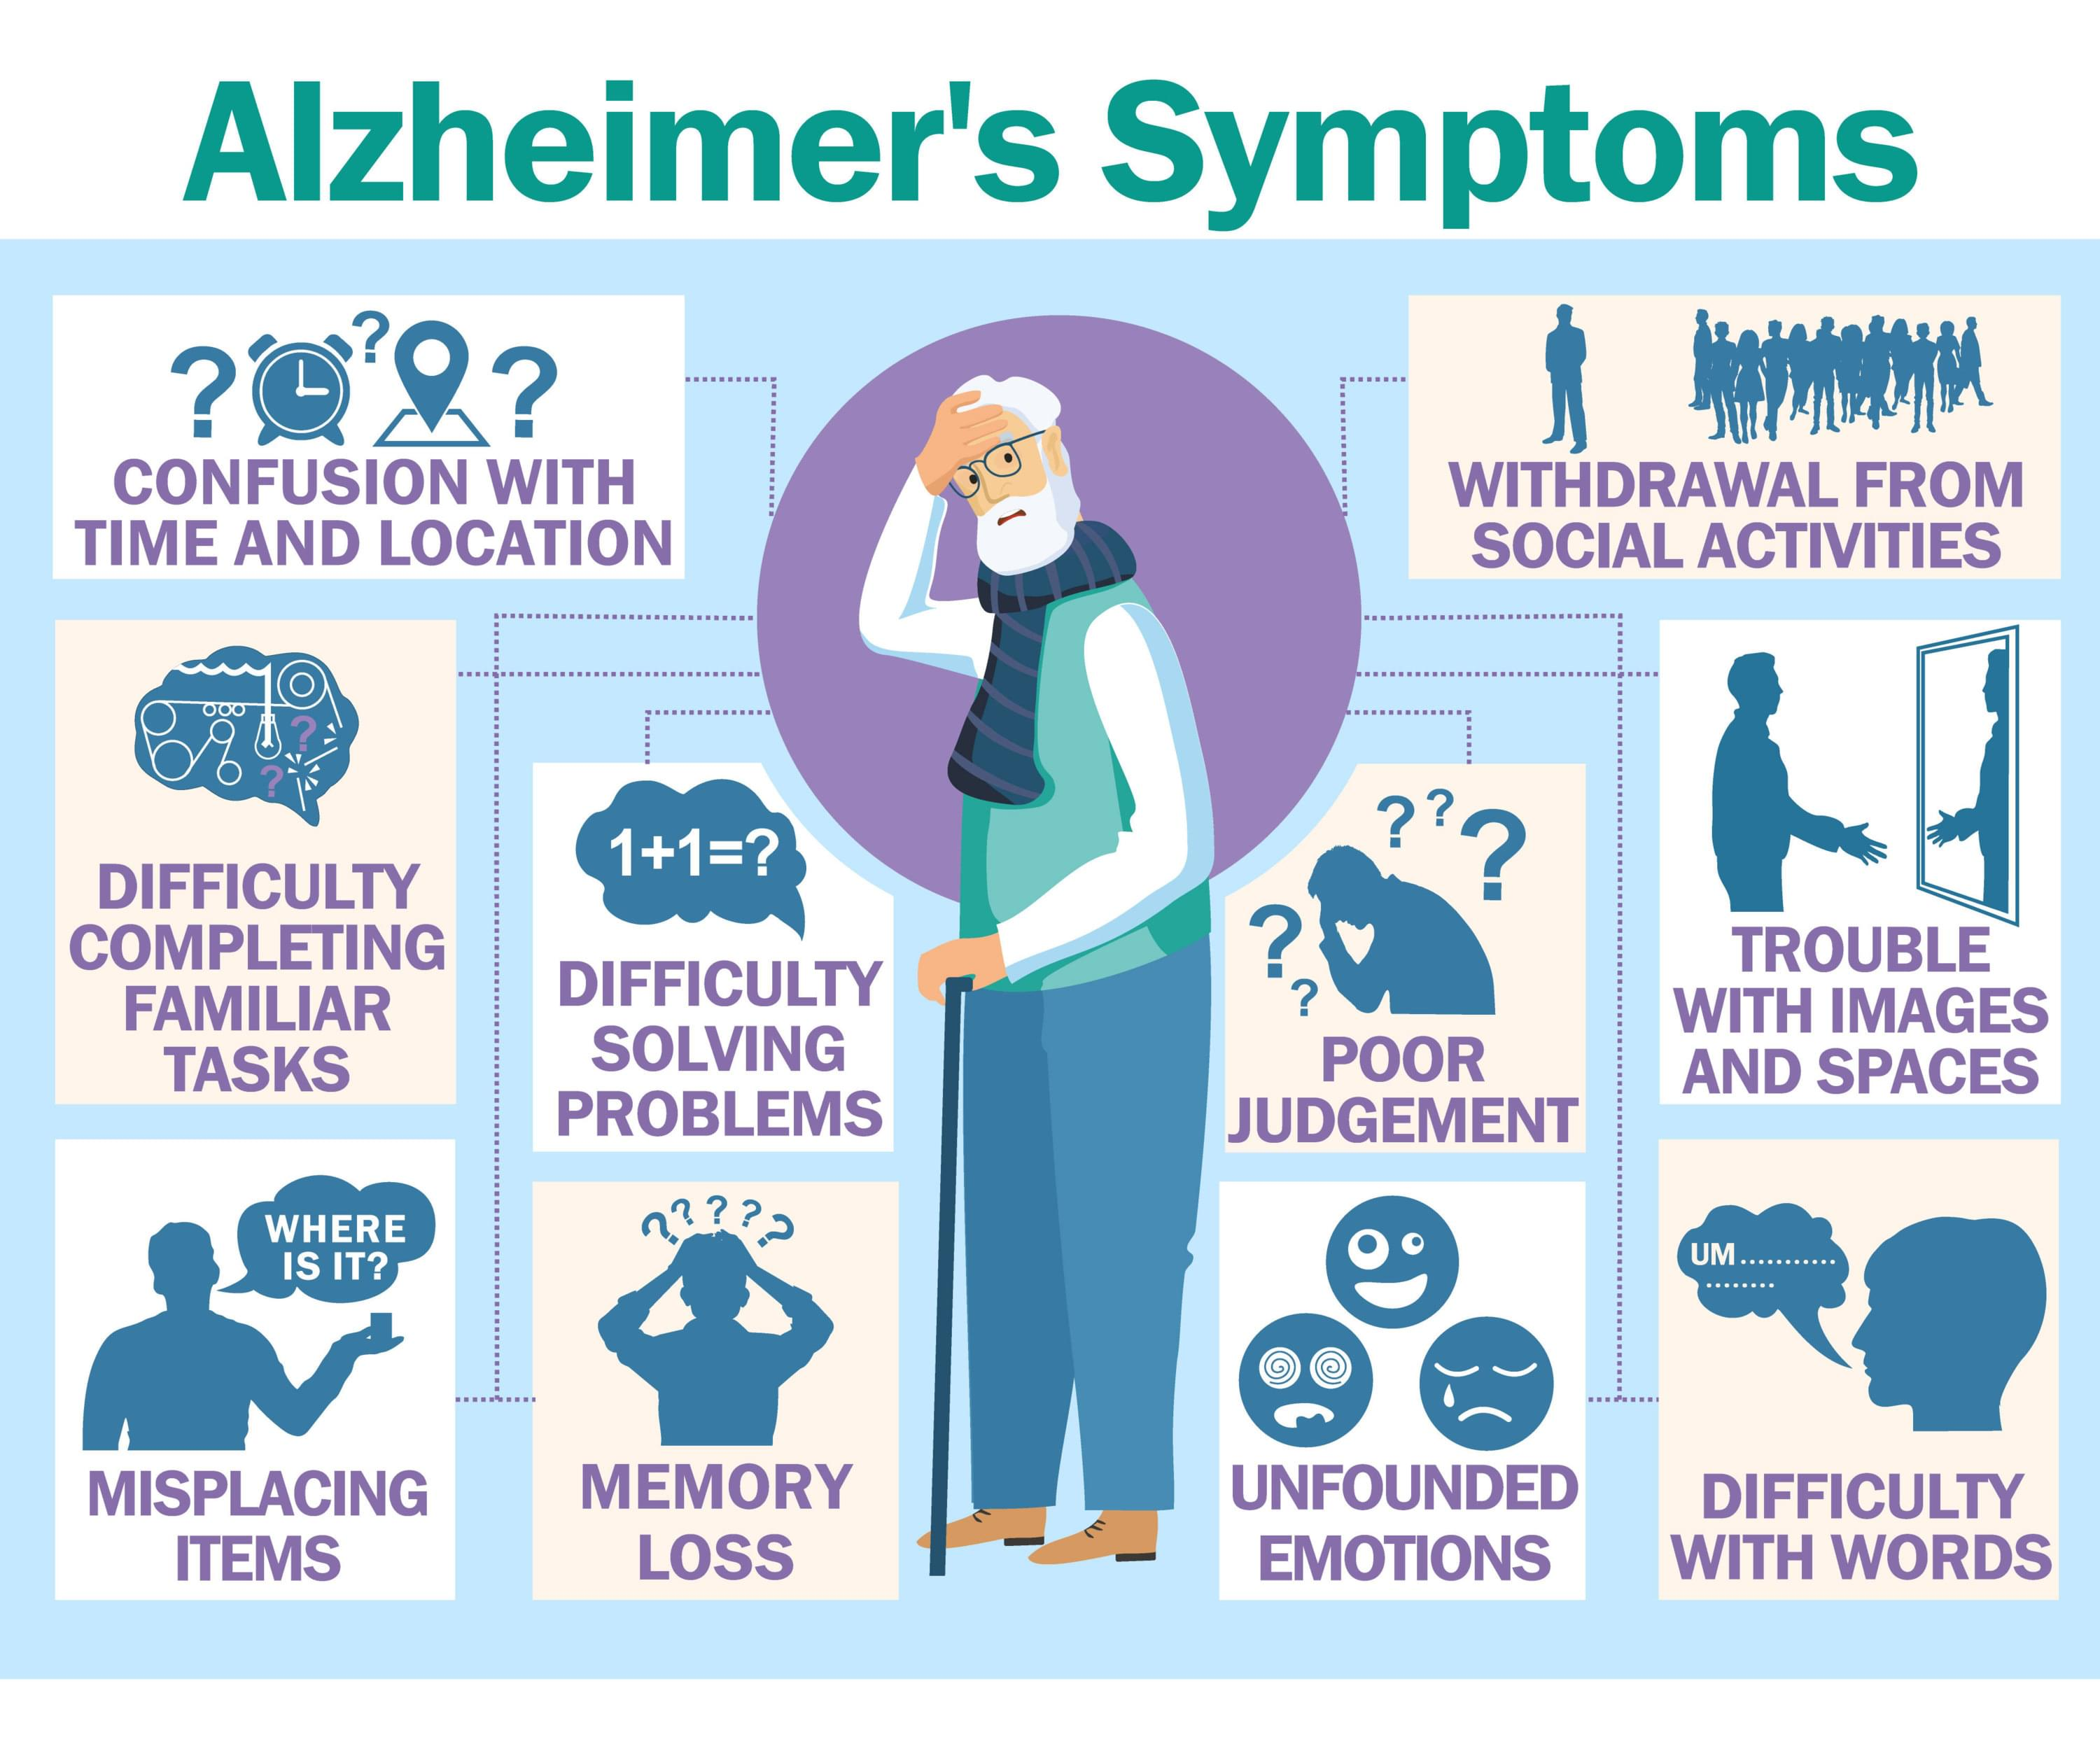 Alzheimer's symptoms are important to notice